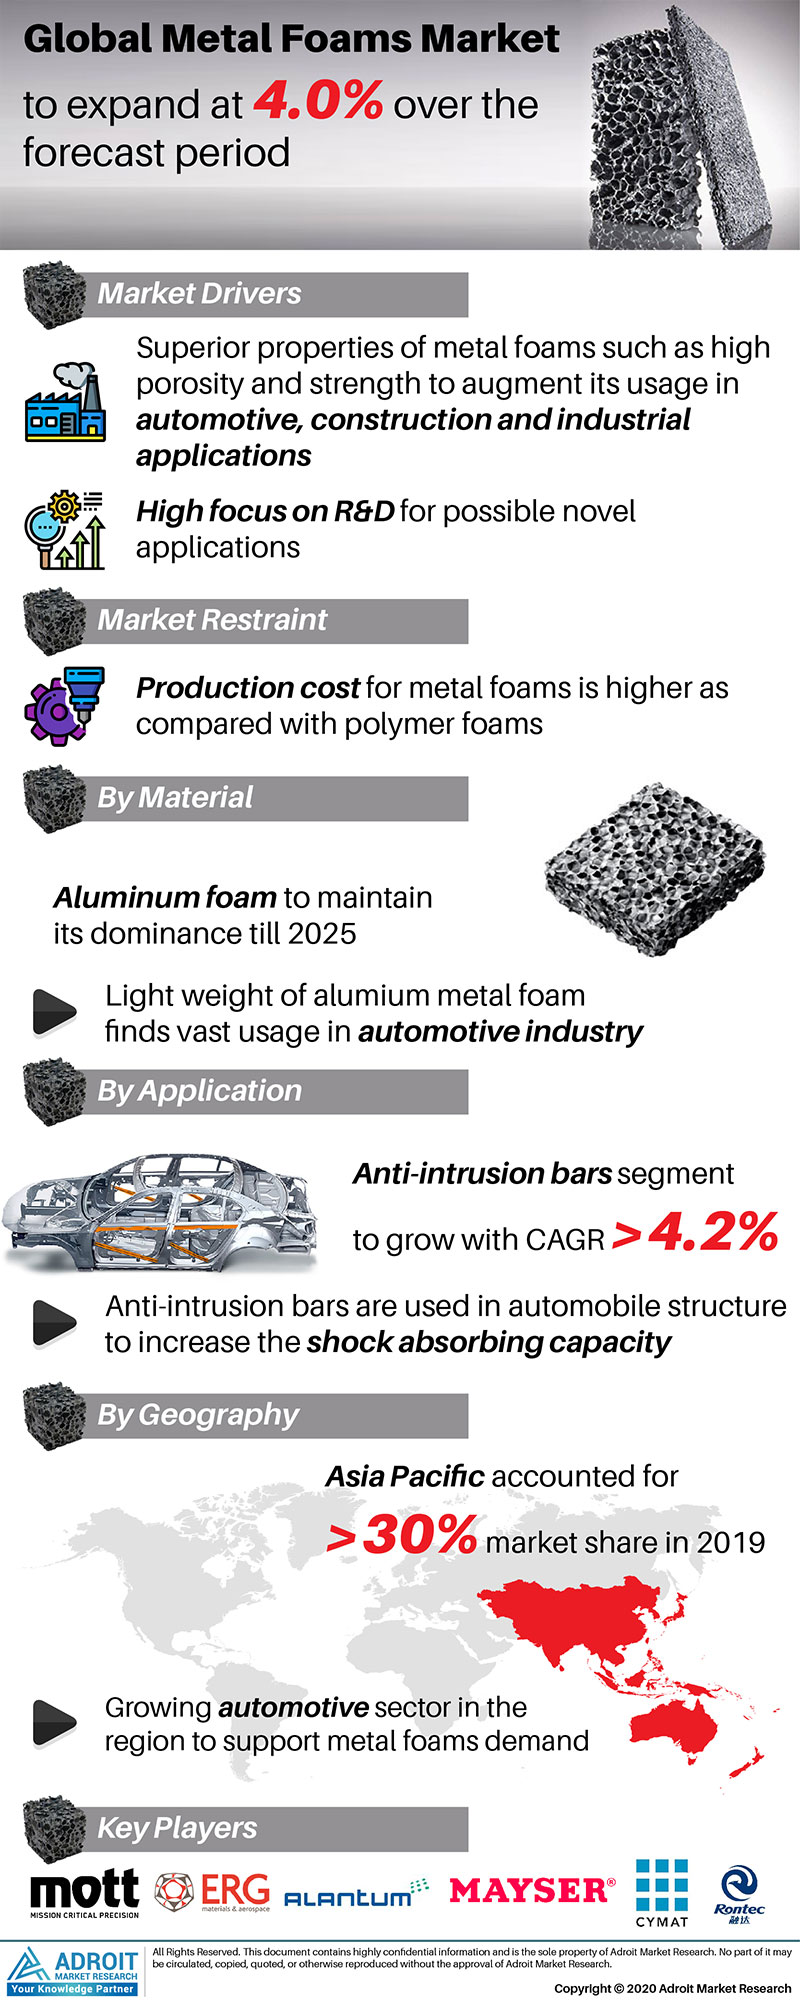 Metal Foam Market by Material, Application, and Region, Global Forecasts 2018 to 2025